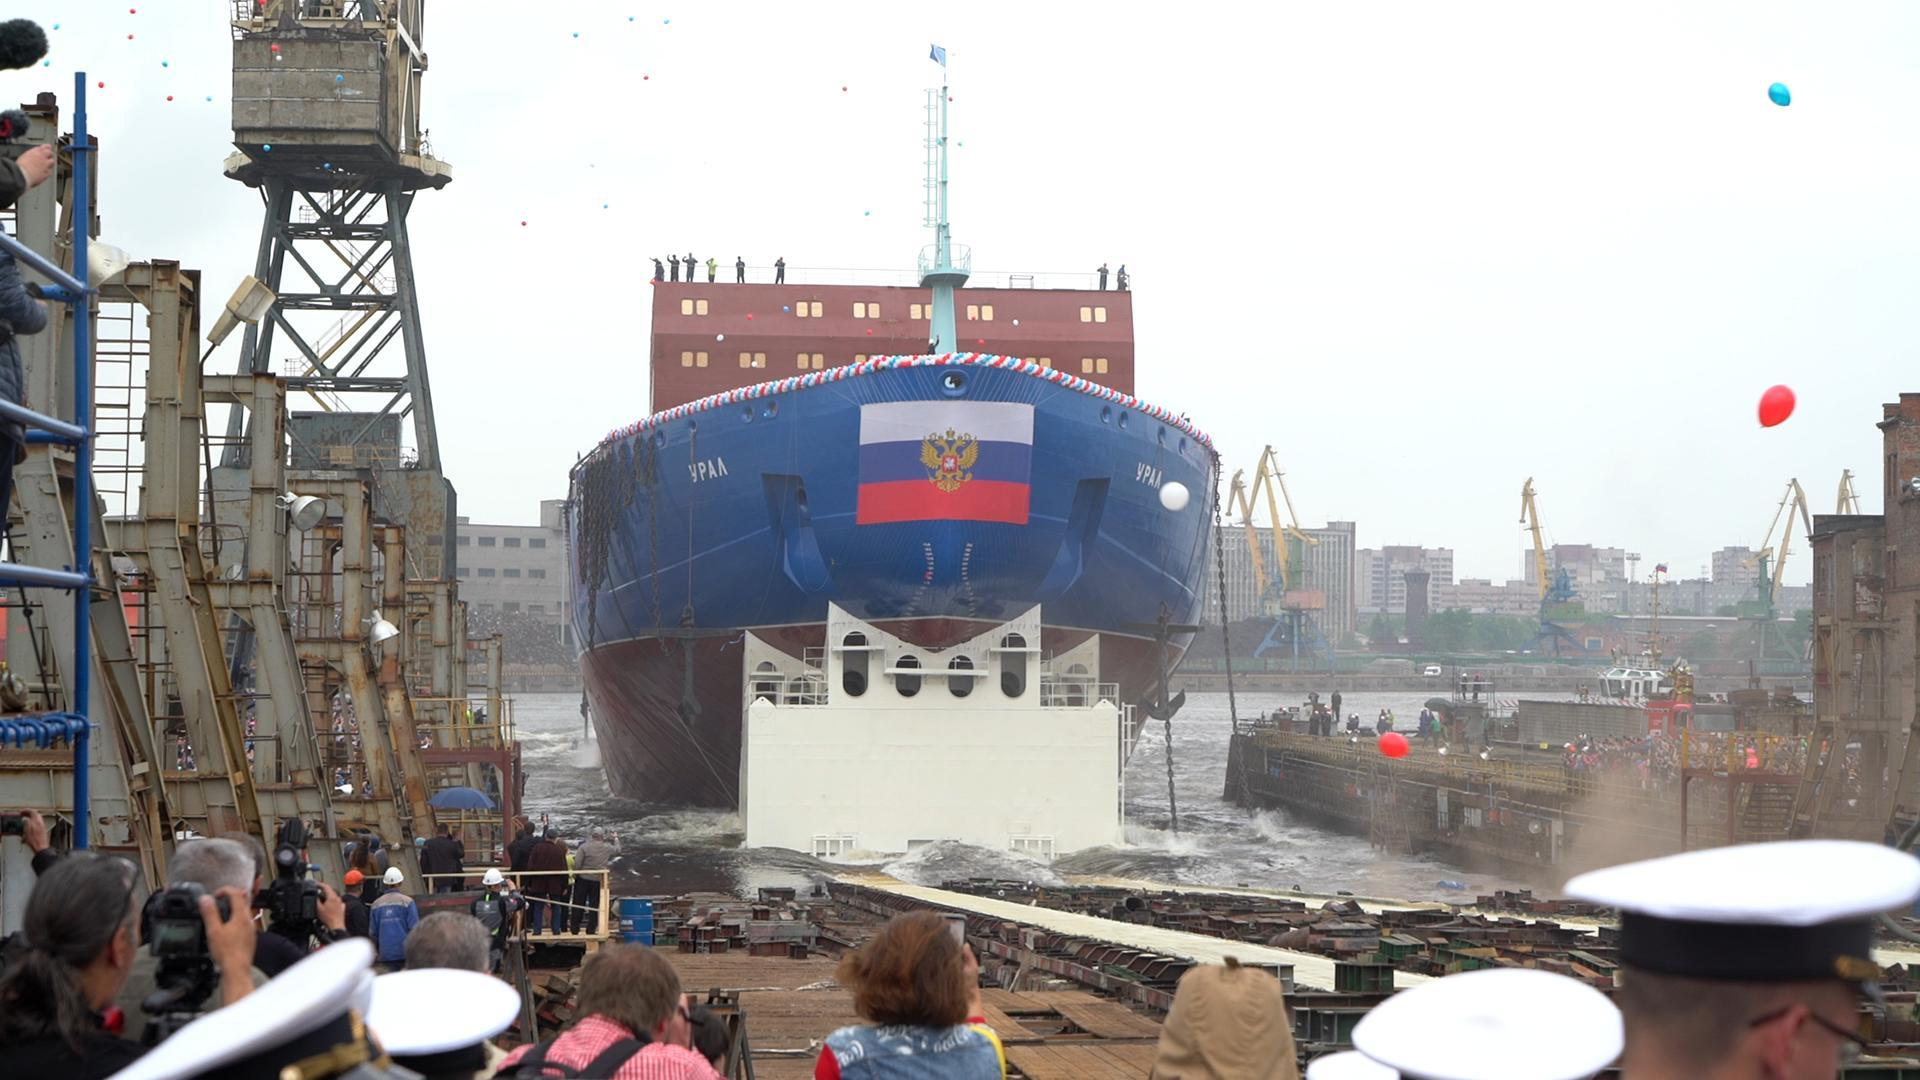 The Ural rolls out of the dry dock at Saint Petersburg's Baltic Shipyard.